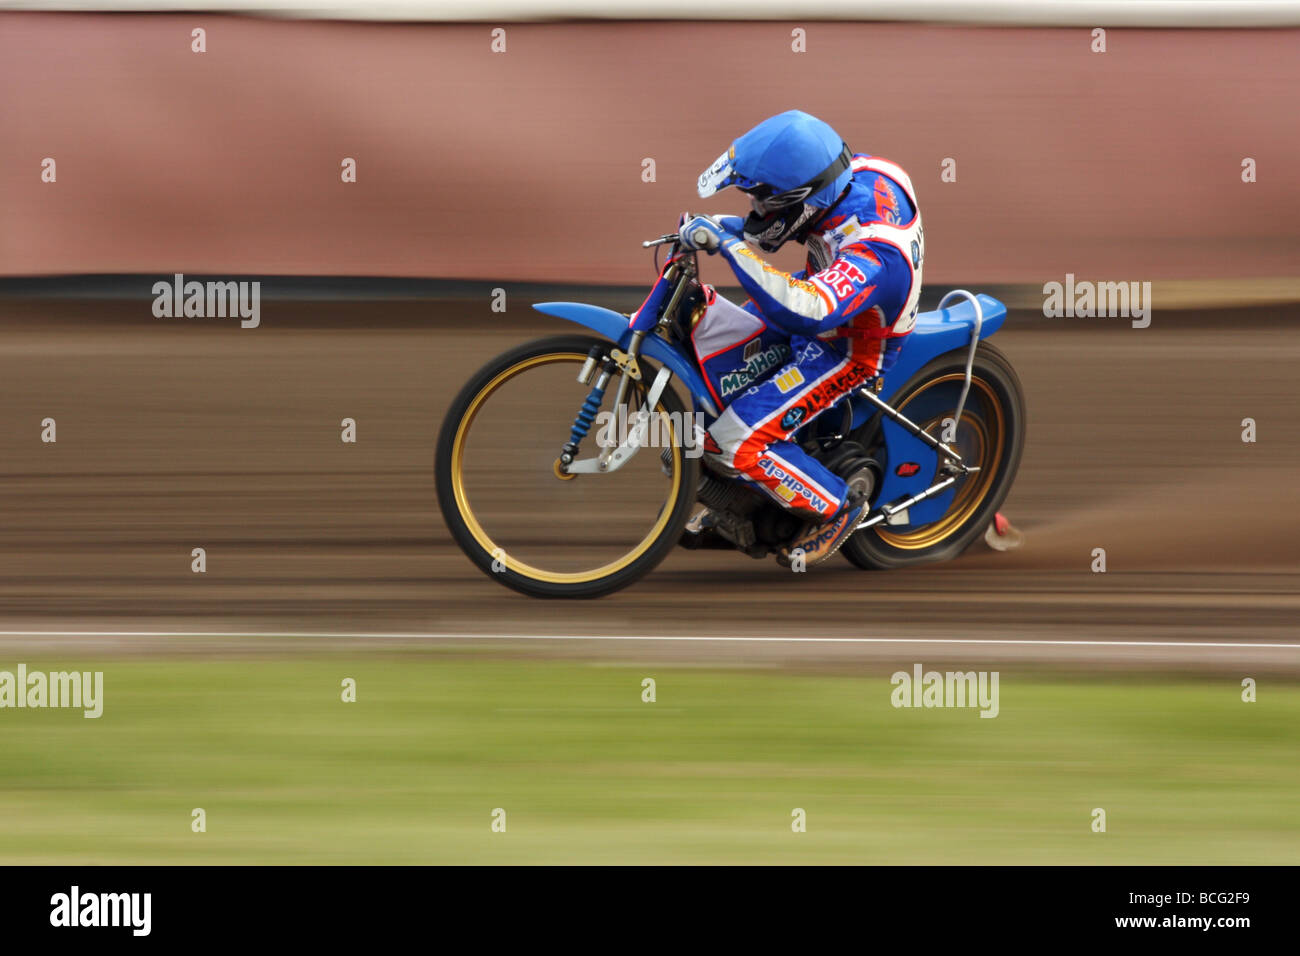 Speedway racing at Svansta race track in Nyköping, Sweden. - Stock Image